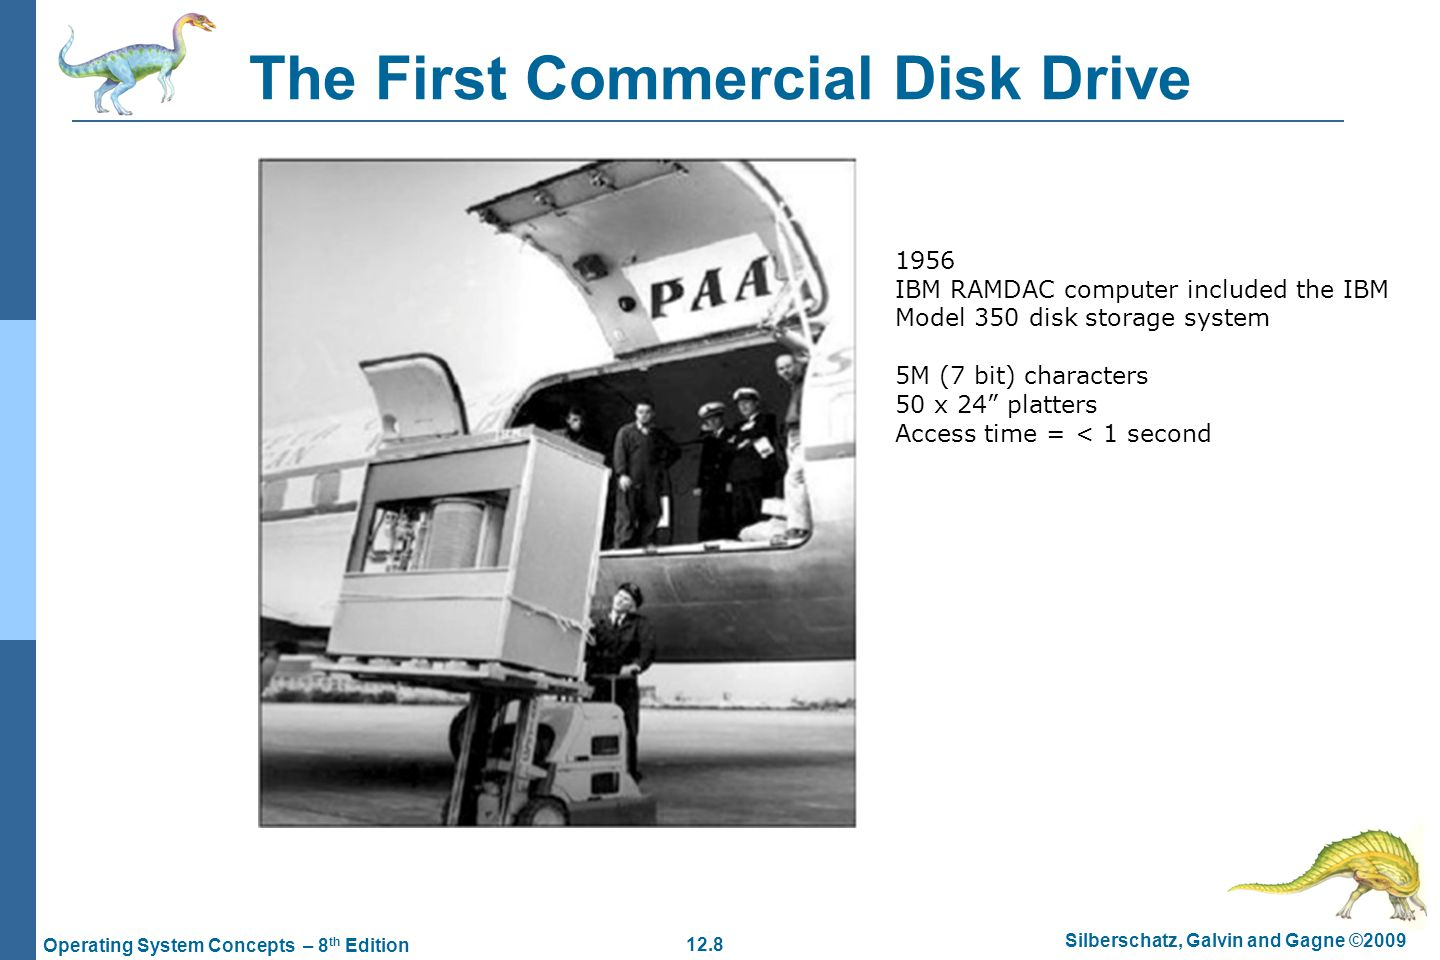 The First Commercial Disk Drive